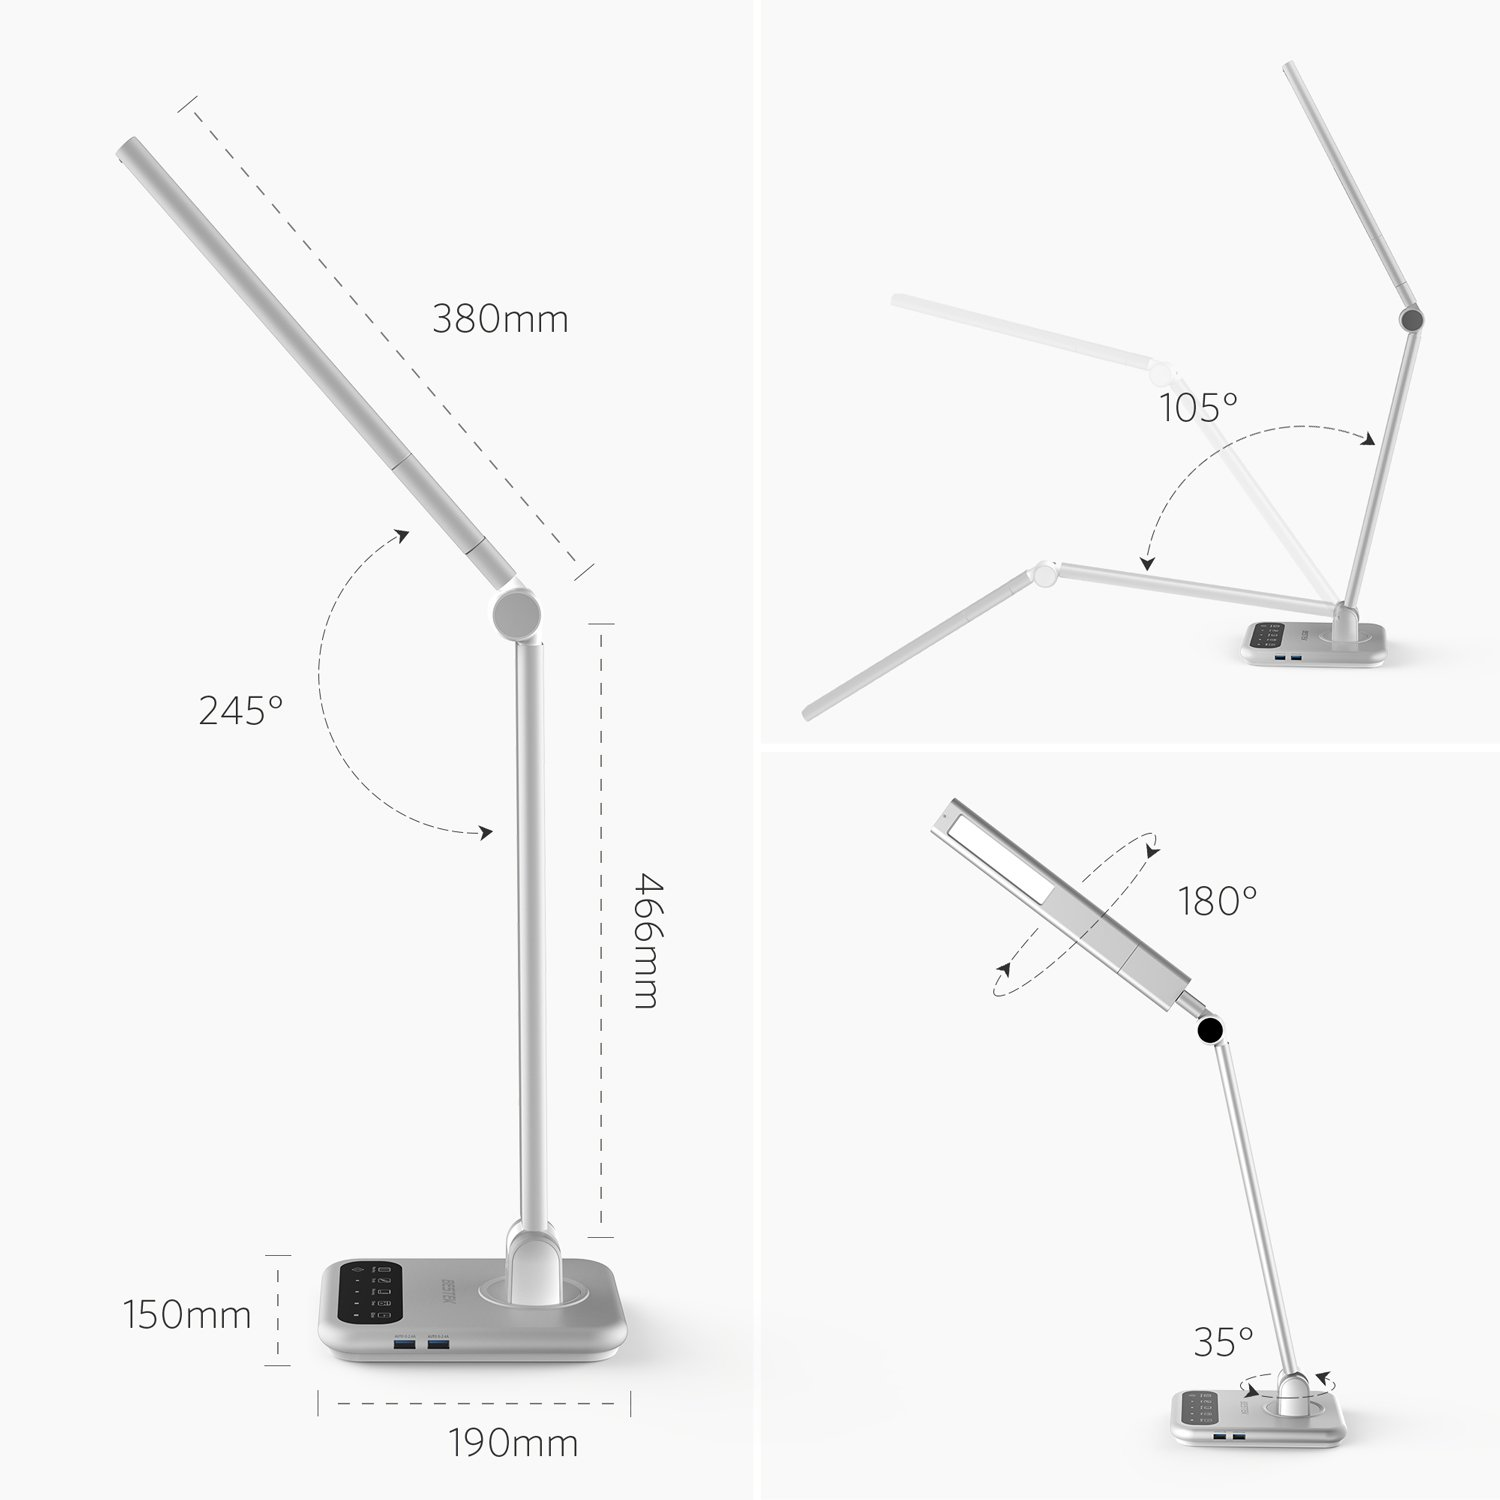 Dimmable LED Desk Lamp, BESTEK LED Table Lamp with Detachable Lamp Head, Foldable and Arm,Touch -Sensitive Control,5V/2.4A USB Chargering Port, 4 Lighting Modes, 1-Hour Auto Timer, Memory Function